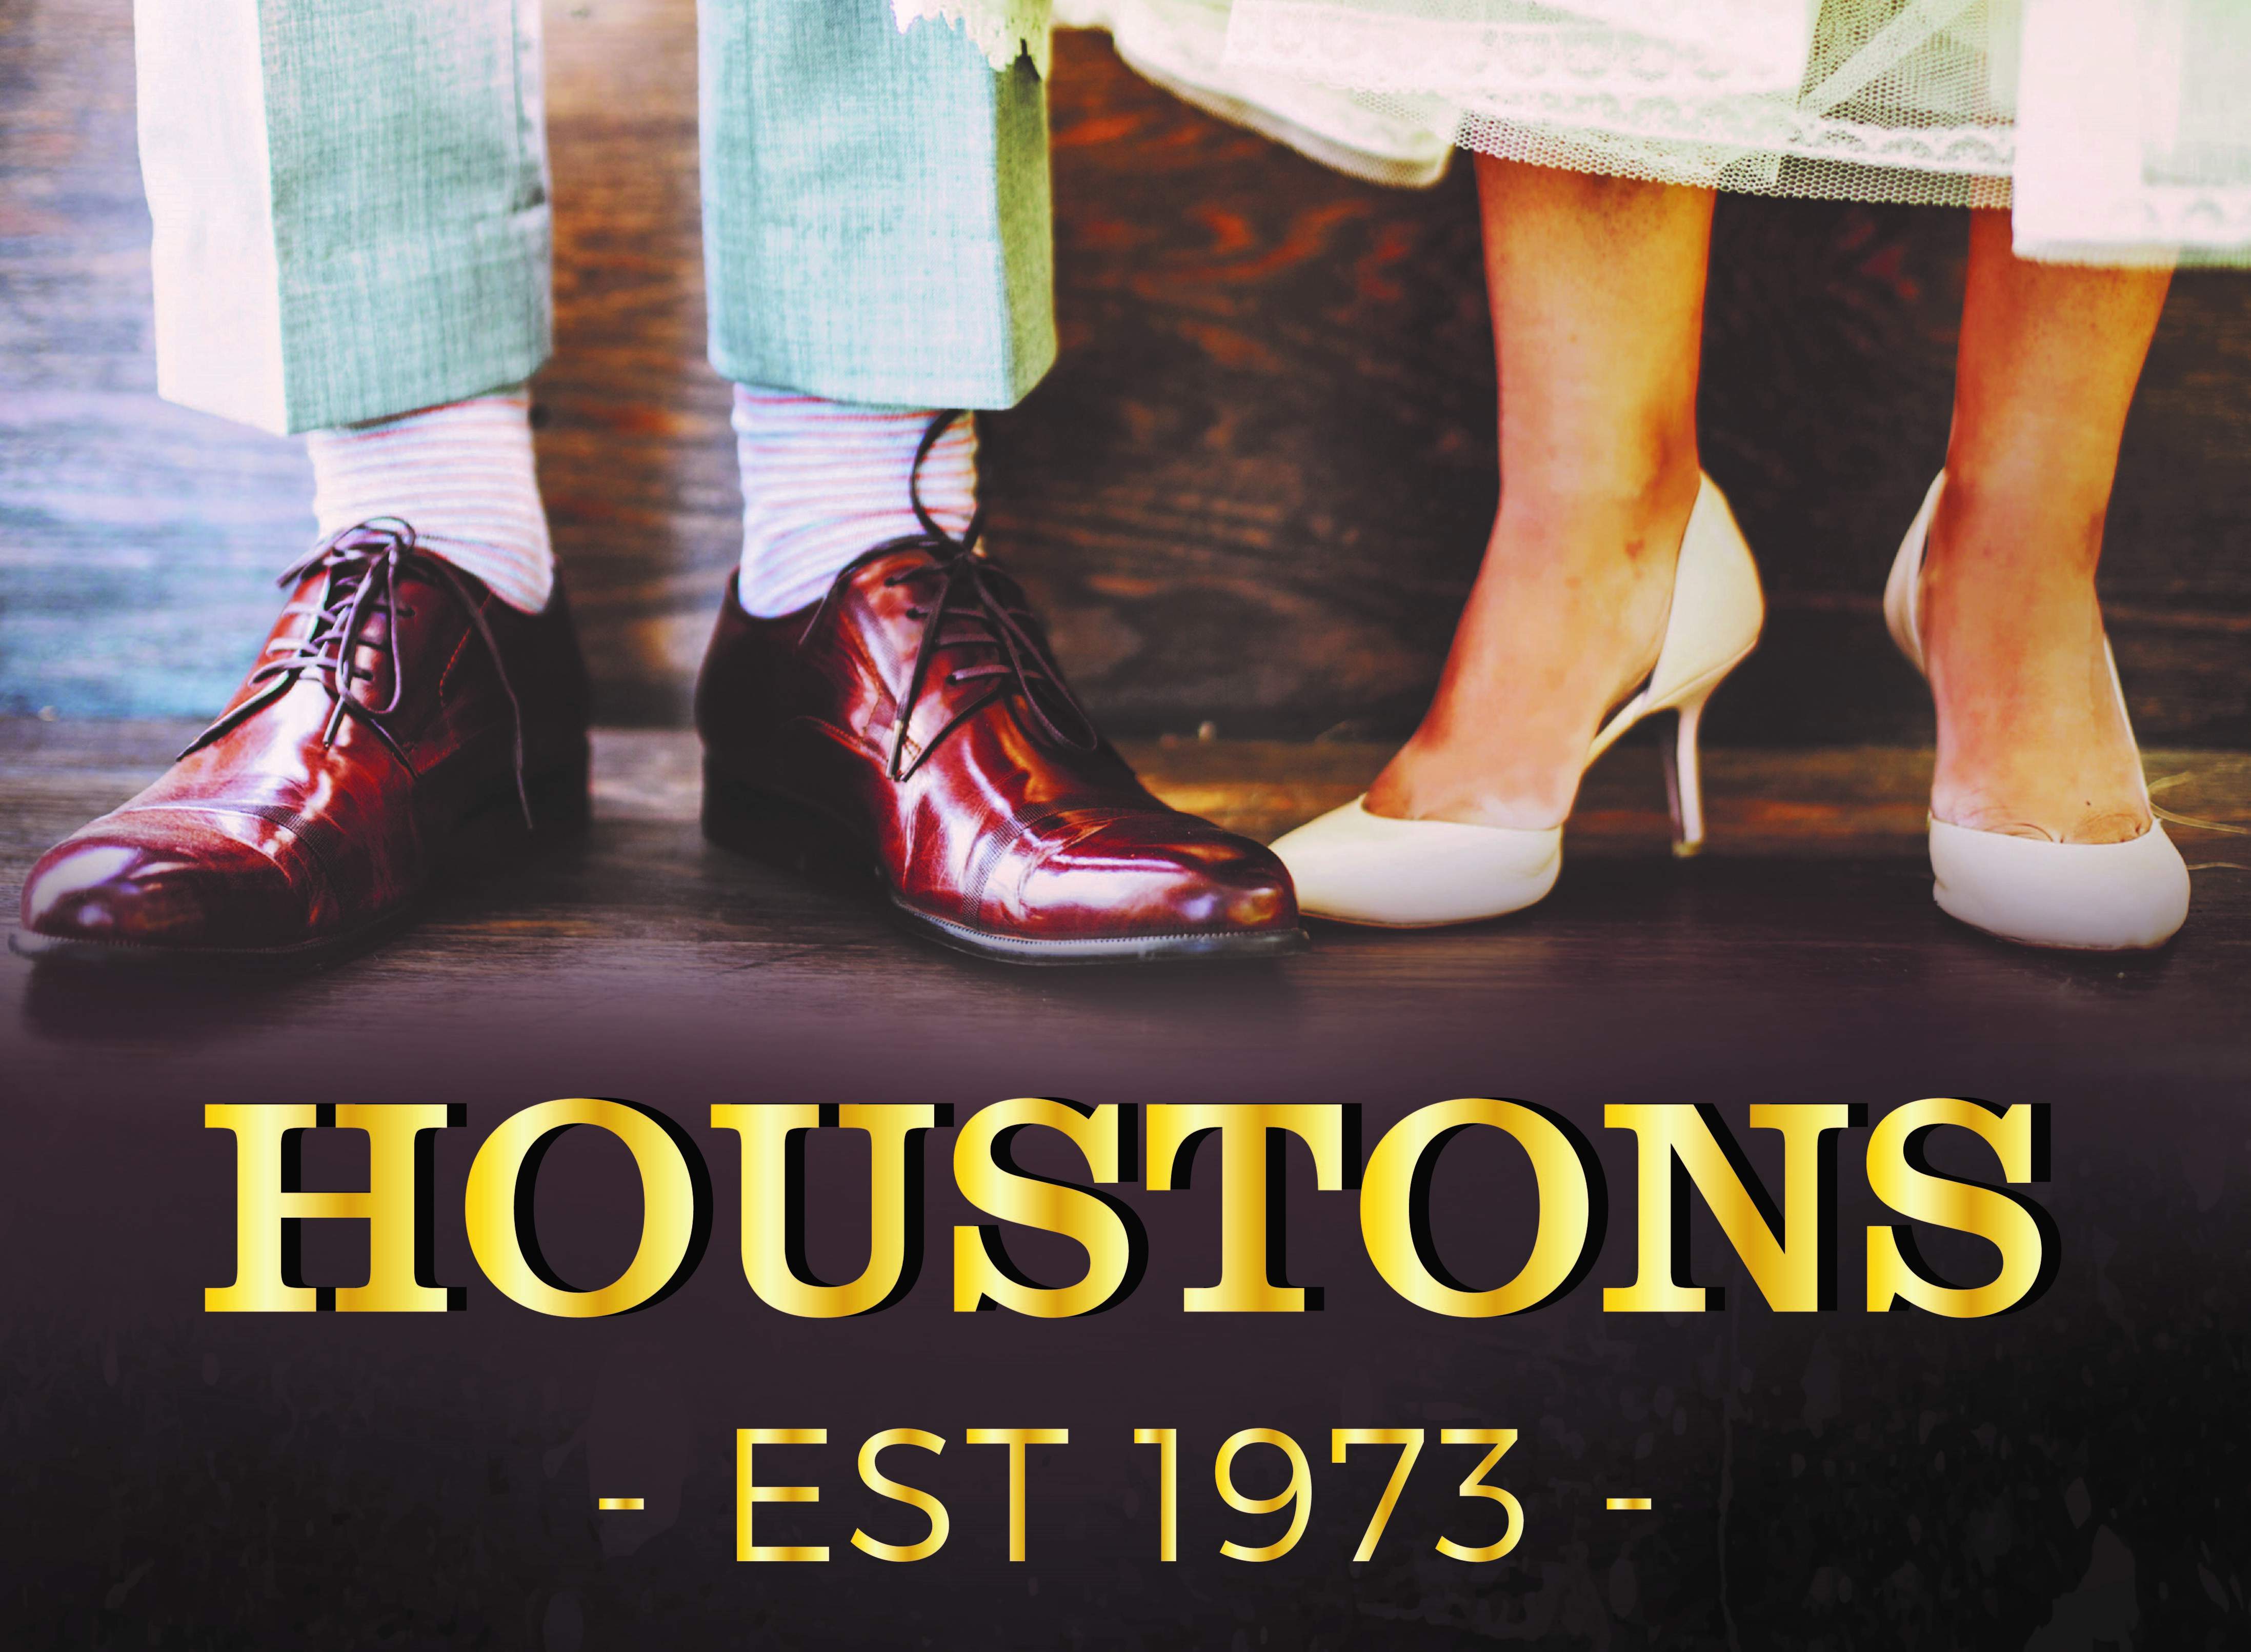 Houstons Footwear Ltd